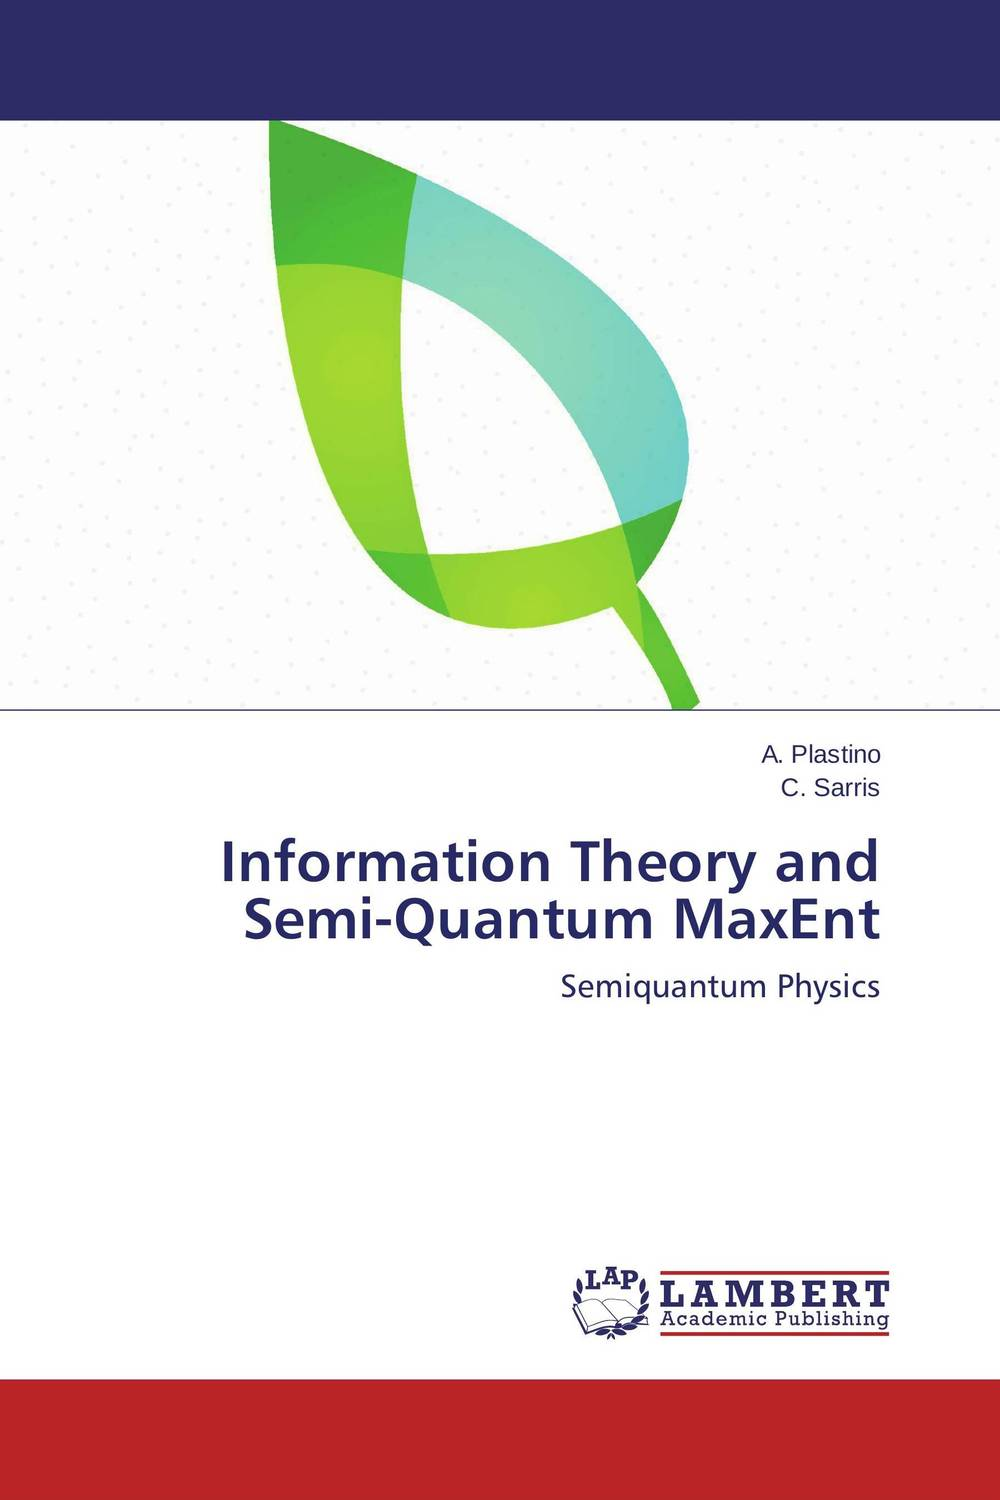 Information Theory and Semi-Quantum MaxEnt головка dde гм 50